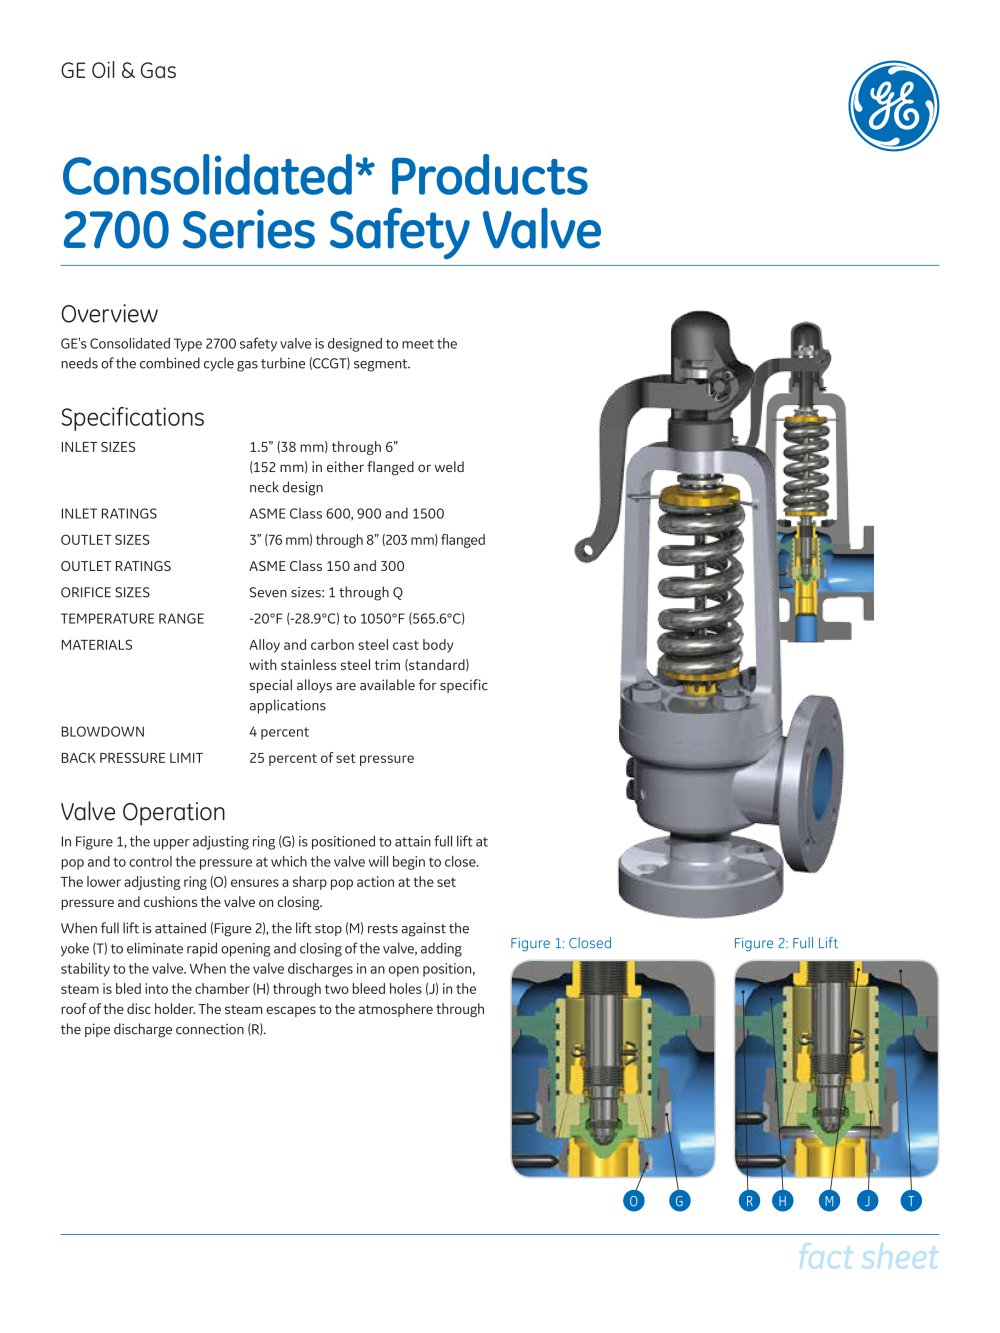 Consolidated Type 2700 Safety Valve 1 4 Pages